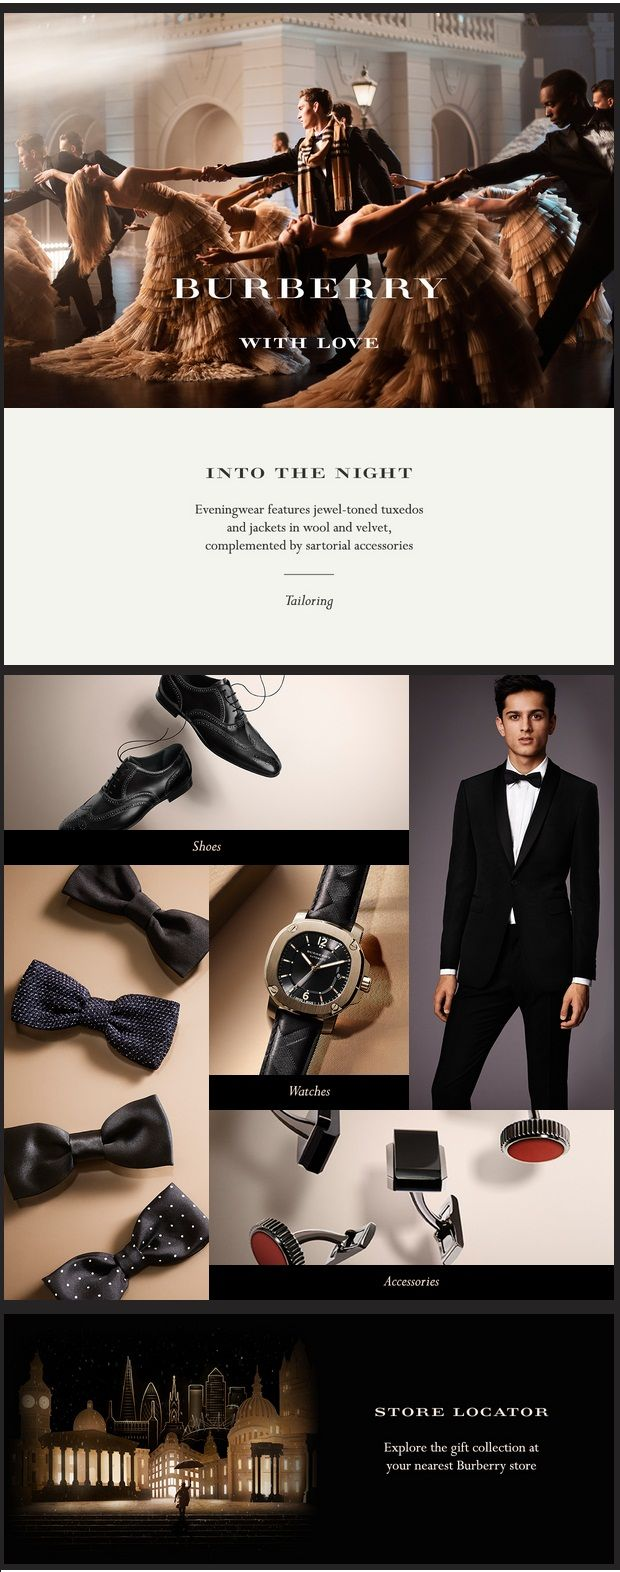 A superclassy email by Burberry with great product display and a great banner image. This exemplary email design adheres to the brand guidelines in every way. More Email Design Inspirations on: http://bit.ly/1my1bEv